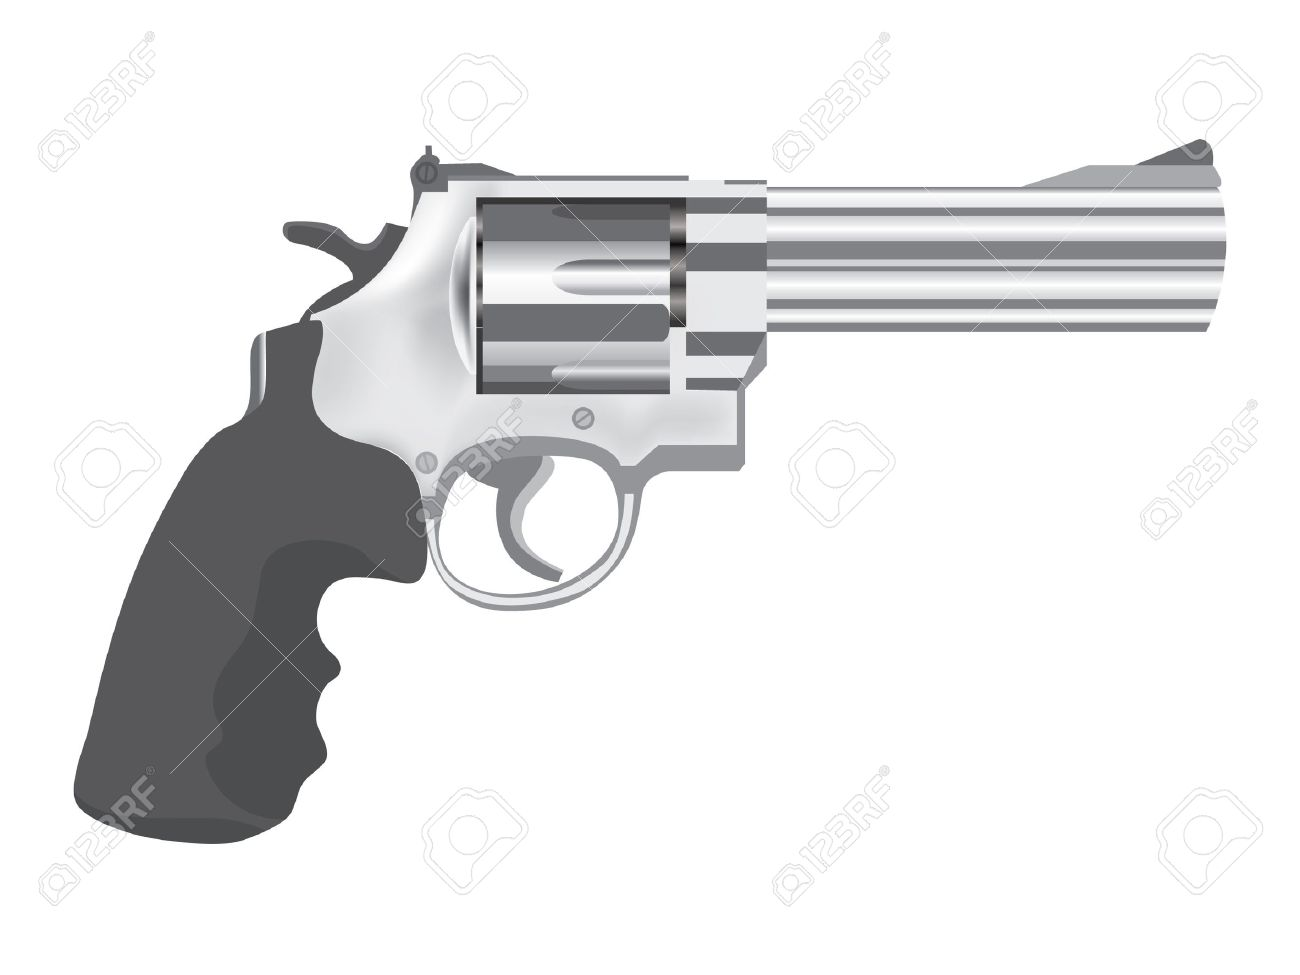 Pistol clipart. Machine gun hand pencil